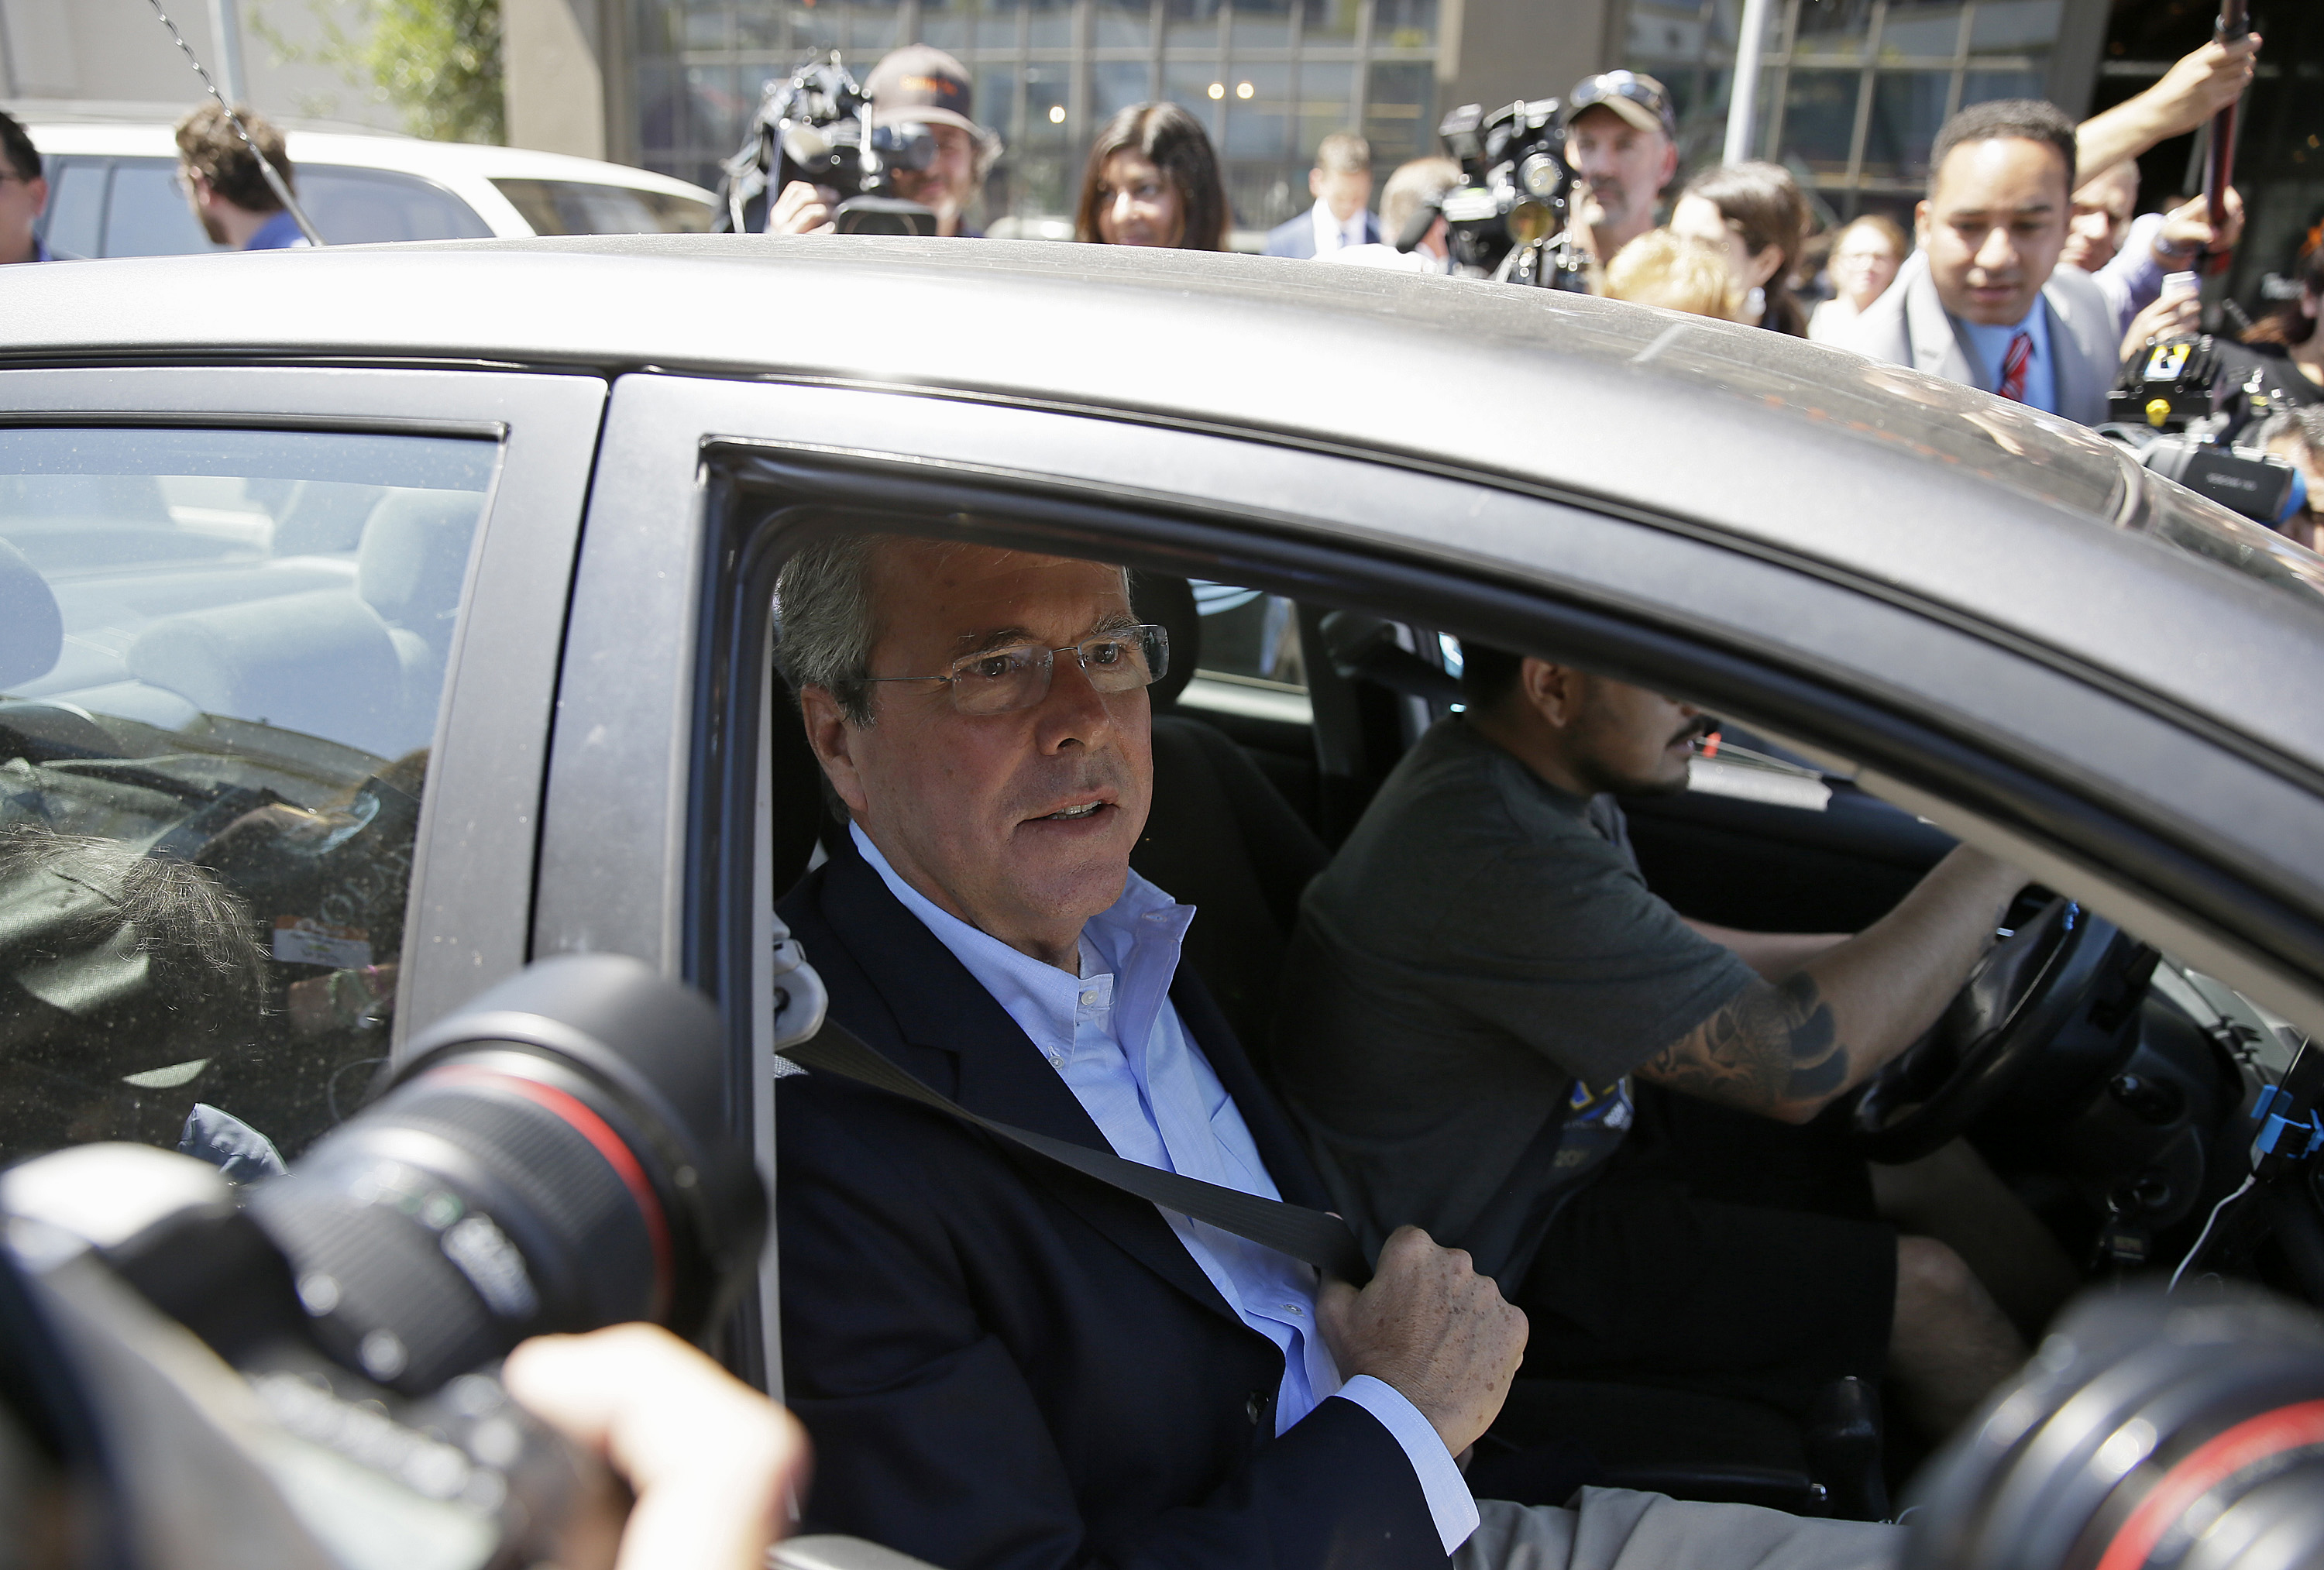 Republican presidential candidate, former Florida Gov. Jeb Bush, puts on his seat belt getting into an Uber car after speaking at Thumbtack, an online startup in San Francisco.